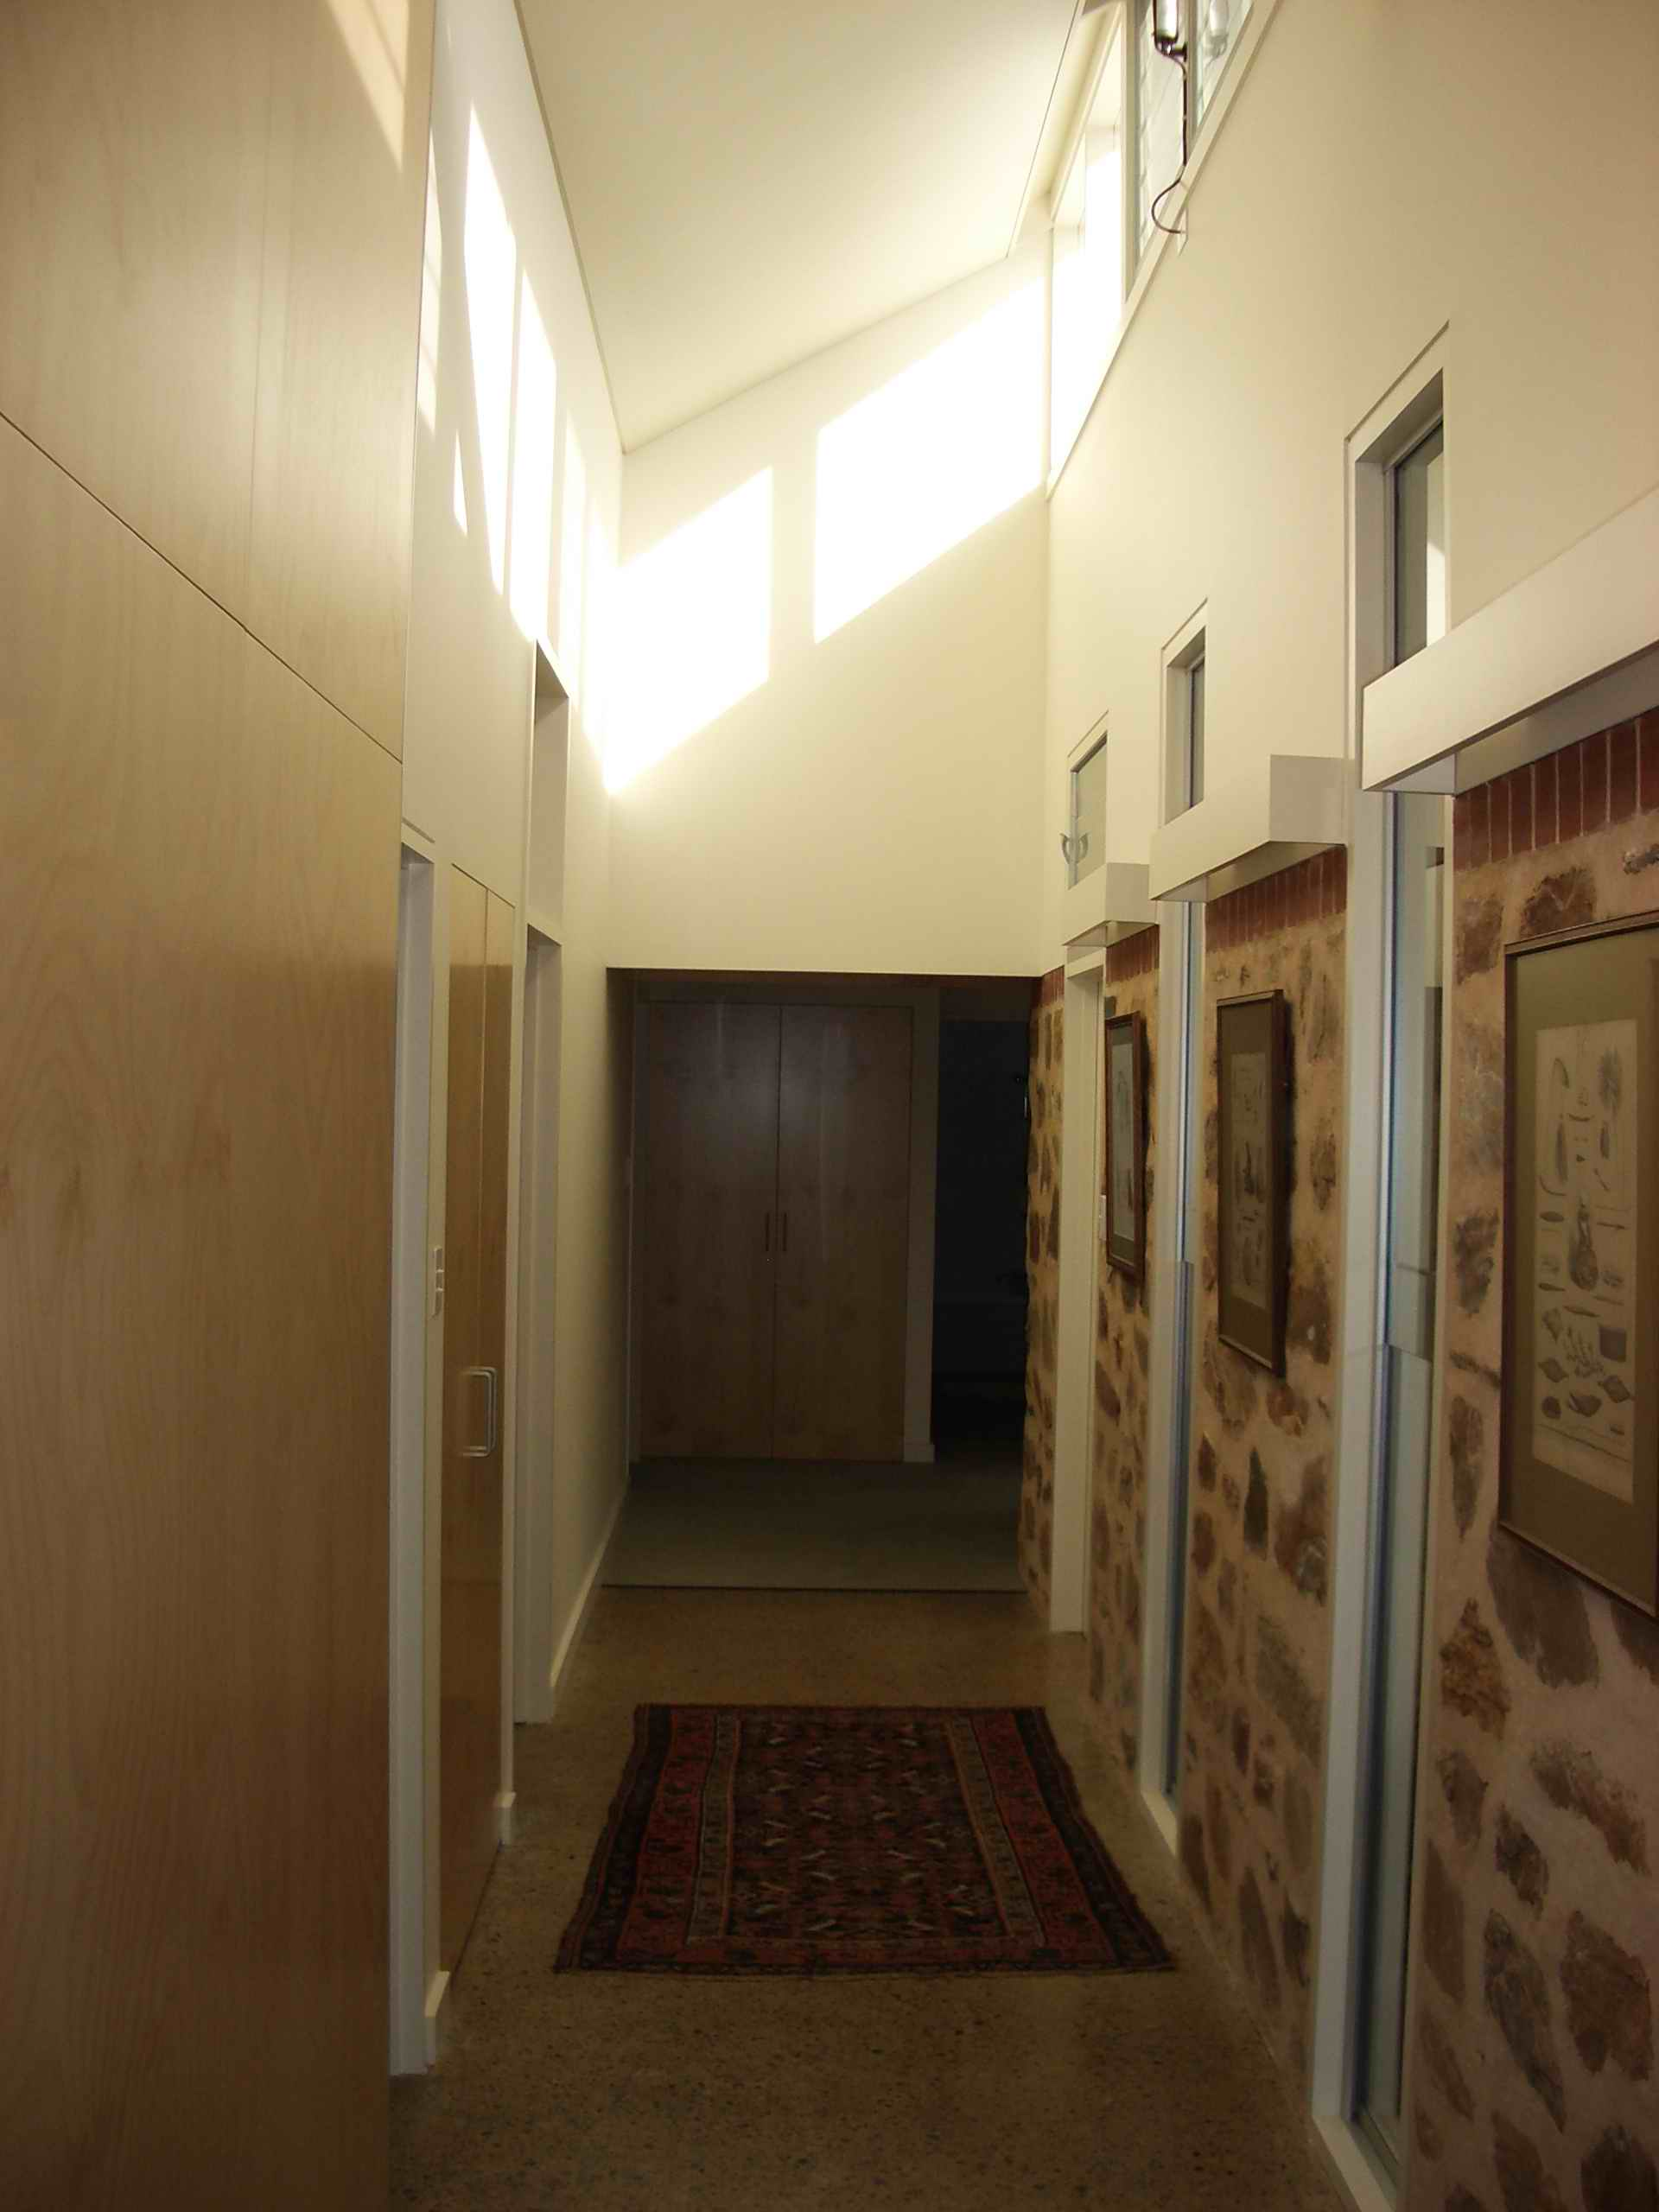 Corridor of Wistow Smart Farmhouse